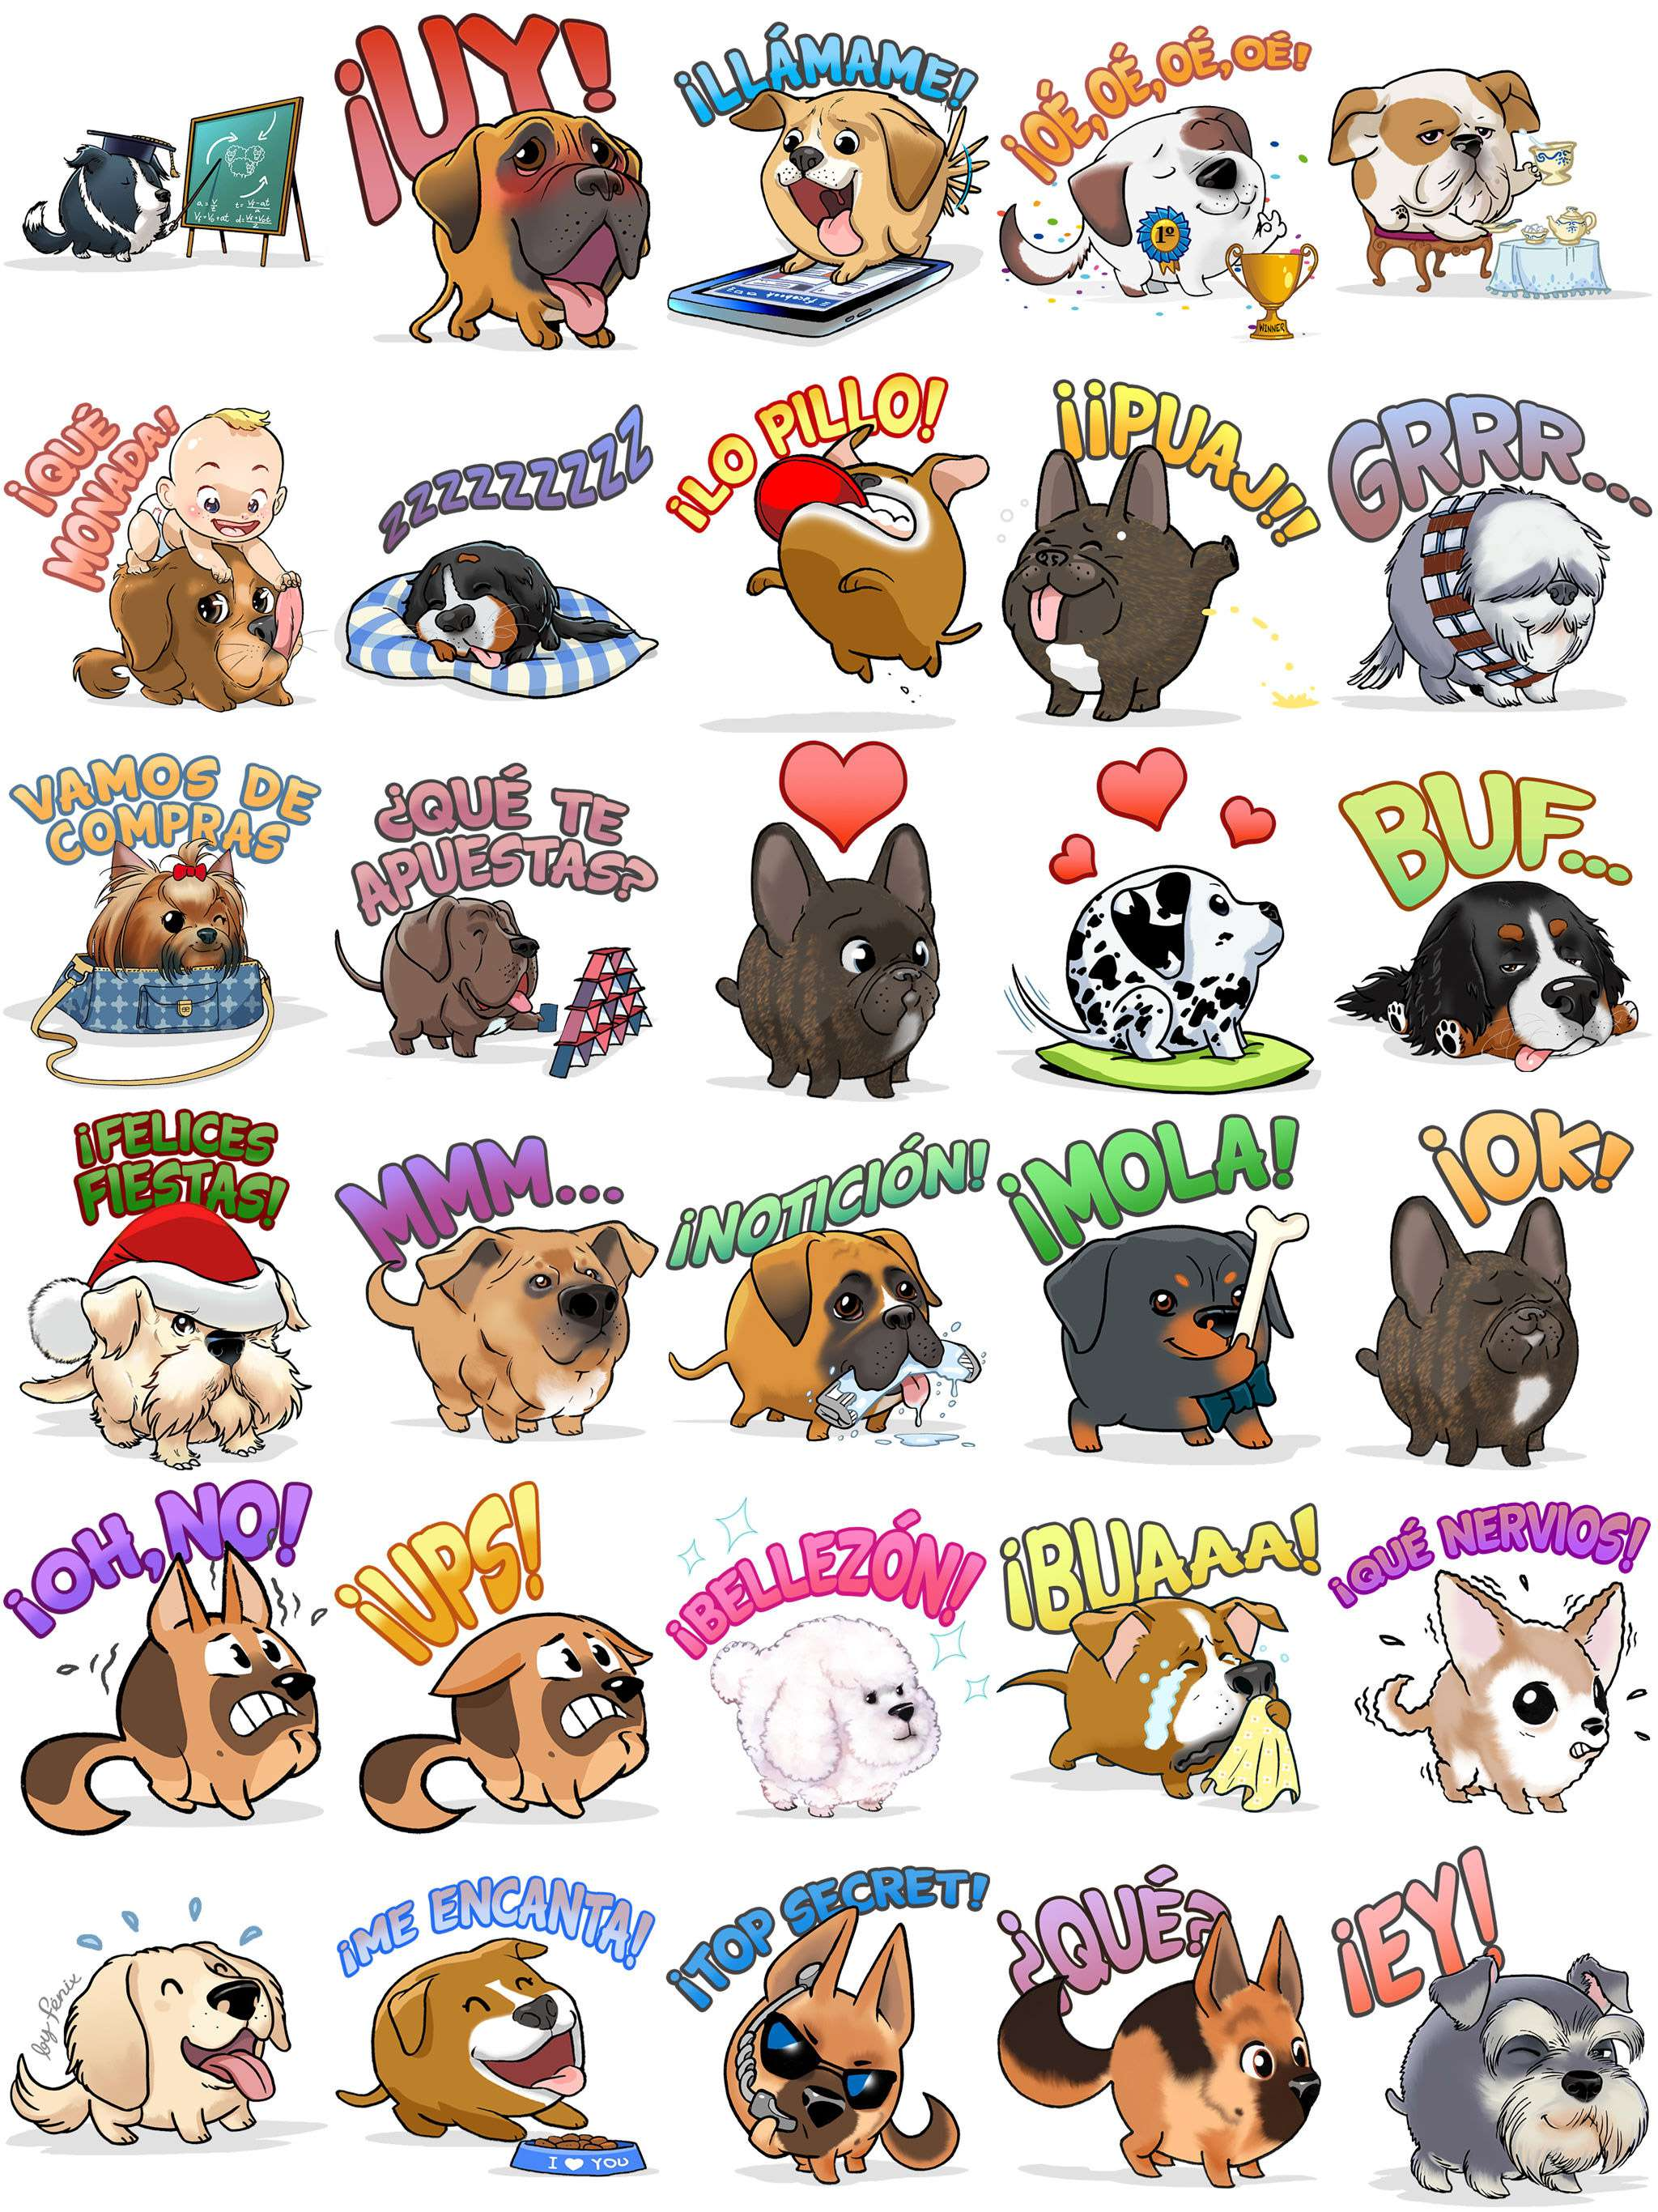 My Edoji Stickers.  Border Collie .  Great Dane .  Dalmatian. miniature Schnauzer. Rottweiler. British Bulldog. Golden Retriever. Bernese Mountain dog. Yorkshire Terrier.   Mongrel. Boxer. American Staffordshire Terrier. Poodle. Chihuahua. German Shepherd. French Bulldog. Argentinian Mastiff. Pyrenean Mountain.